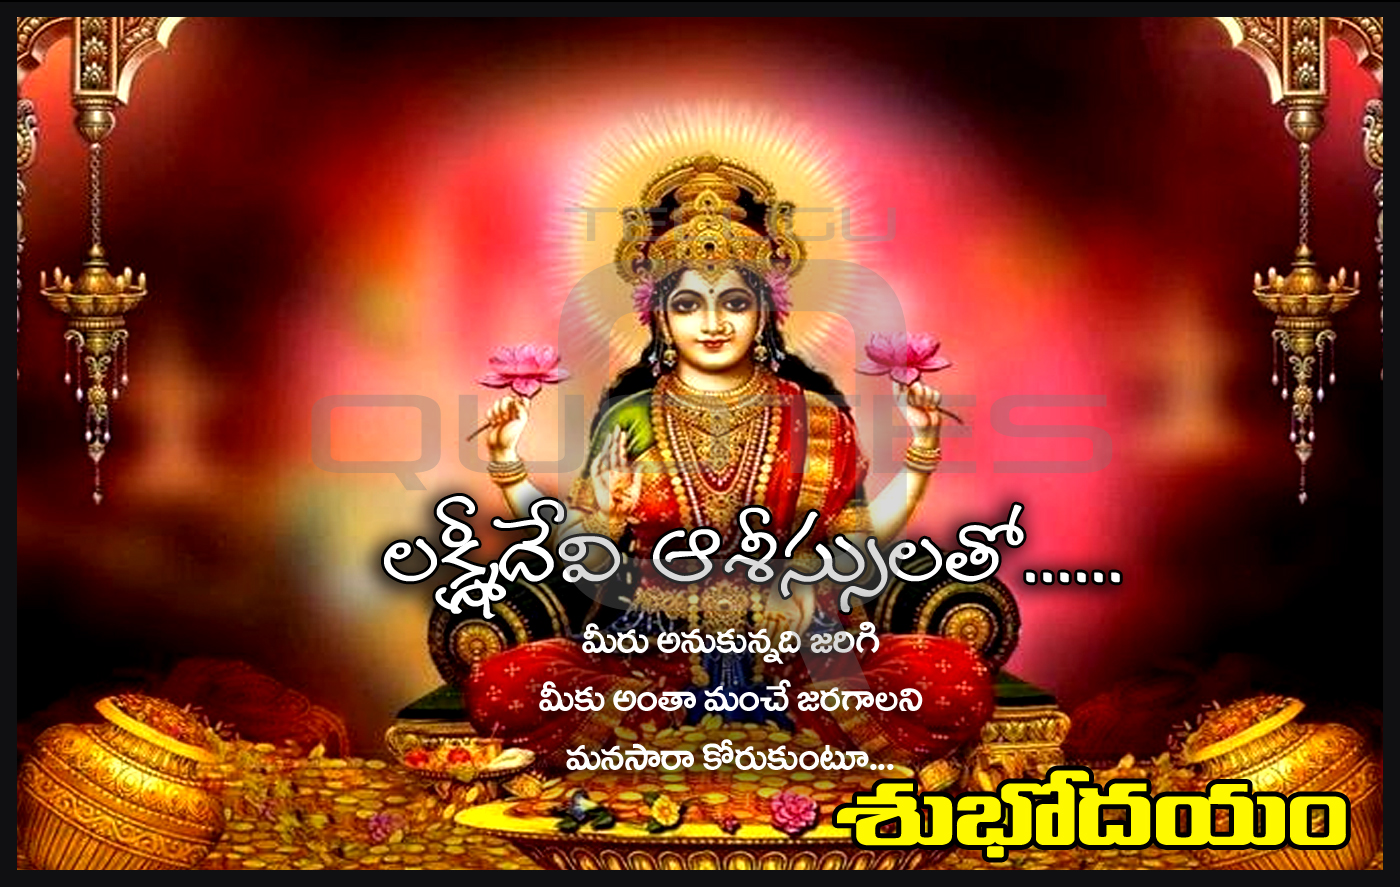 Best 50 Friday Good Morning Mahalakshmi Images Twistequill